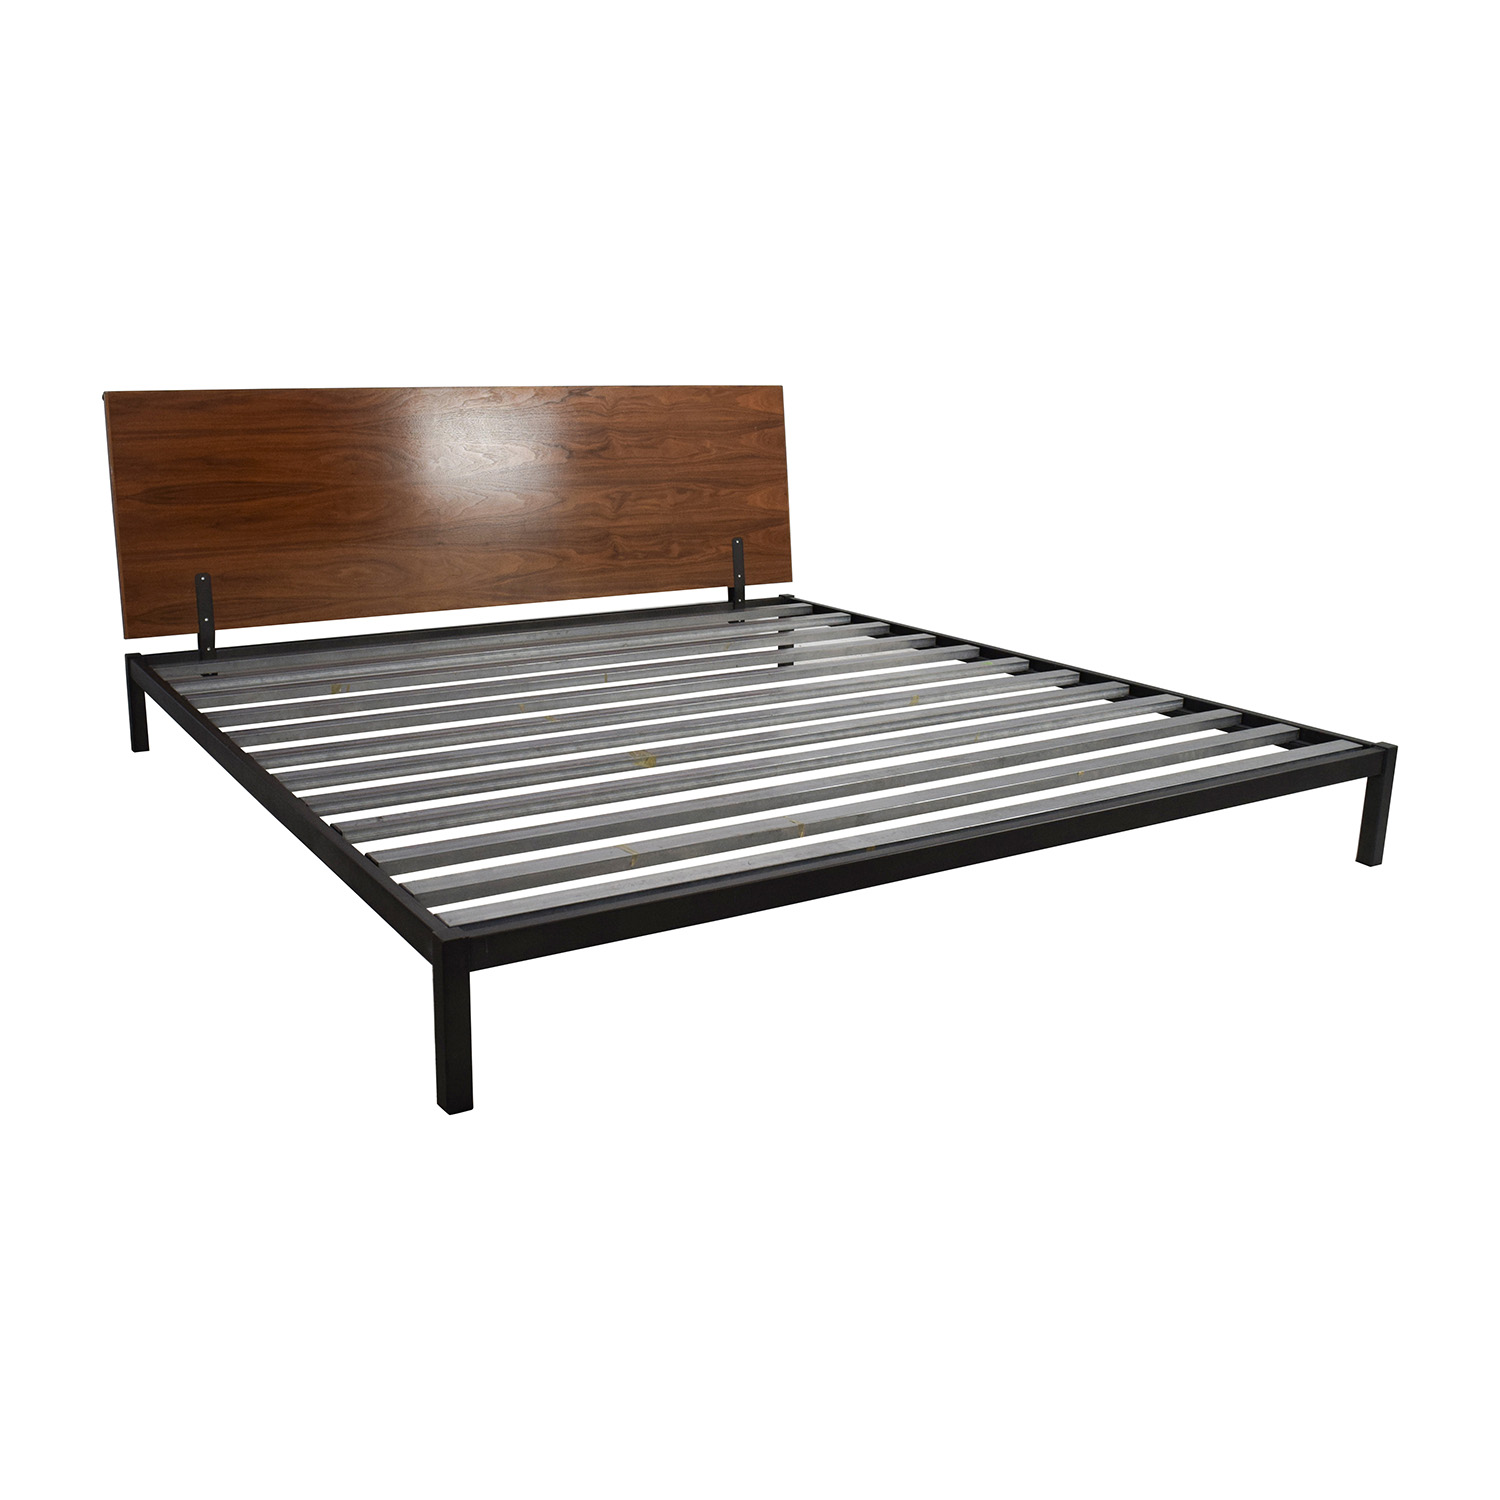 OFF Room and Board Room & Board Copenhagen King Size Bed Beds